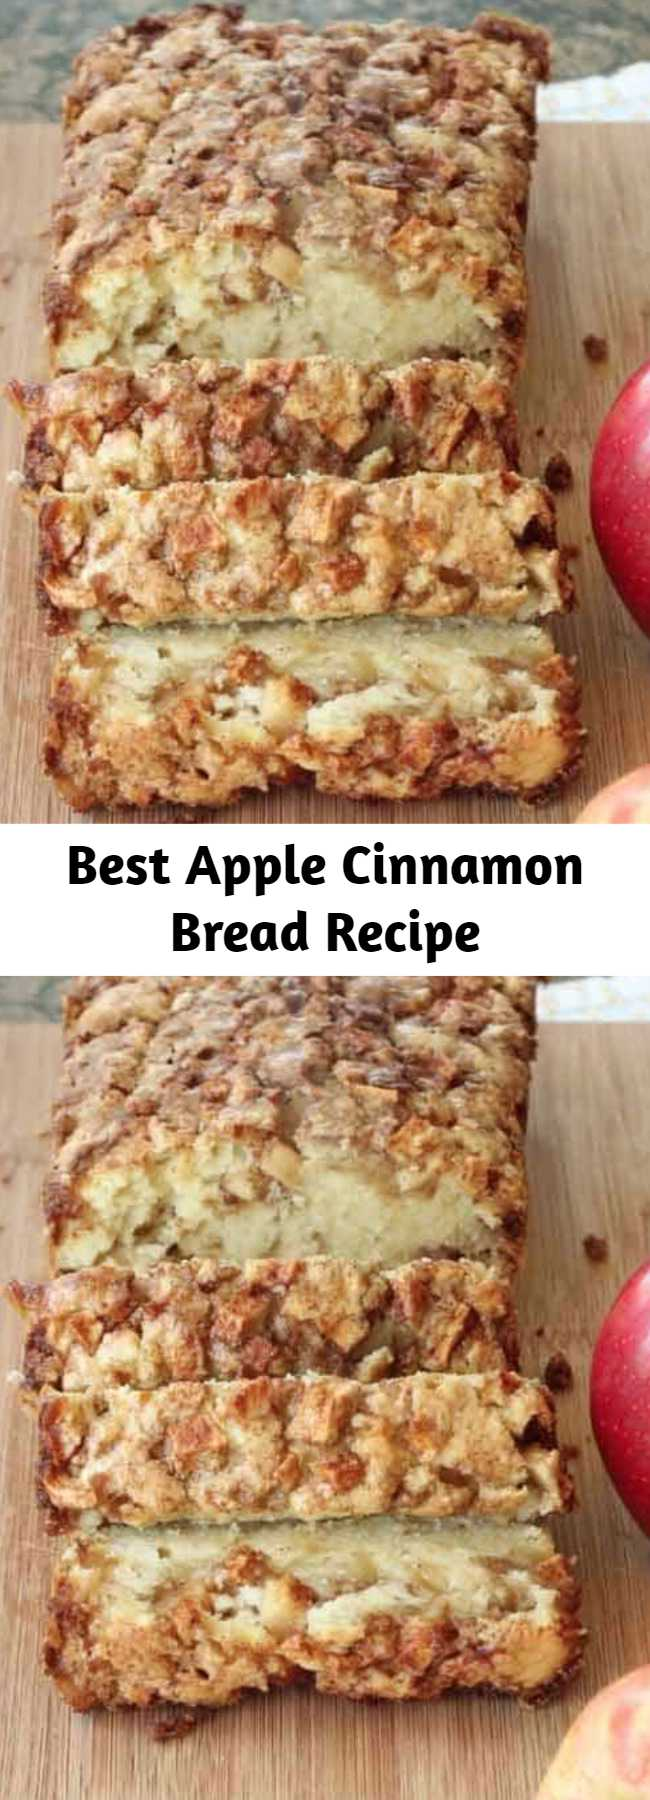 Best Apple Cinnamon Bread Recipe - This is the absolute BEST Apple Bread on the internet. Swirled with cinnamon sugar and juicy apple pieces, try this Apple Bread recipe out and see why it has over 250 amazing reviews!